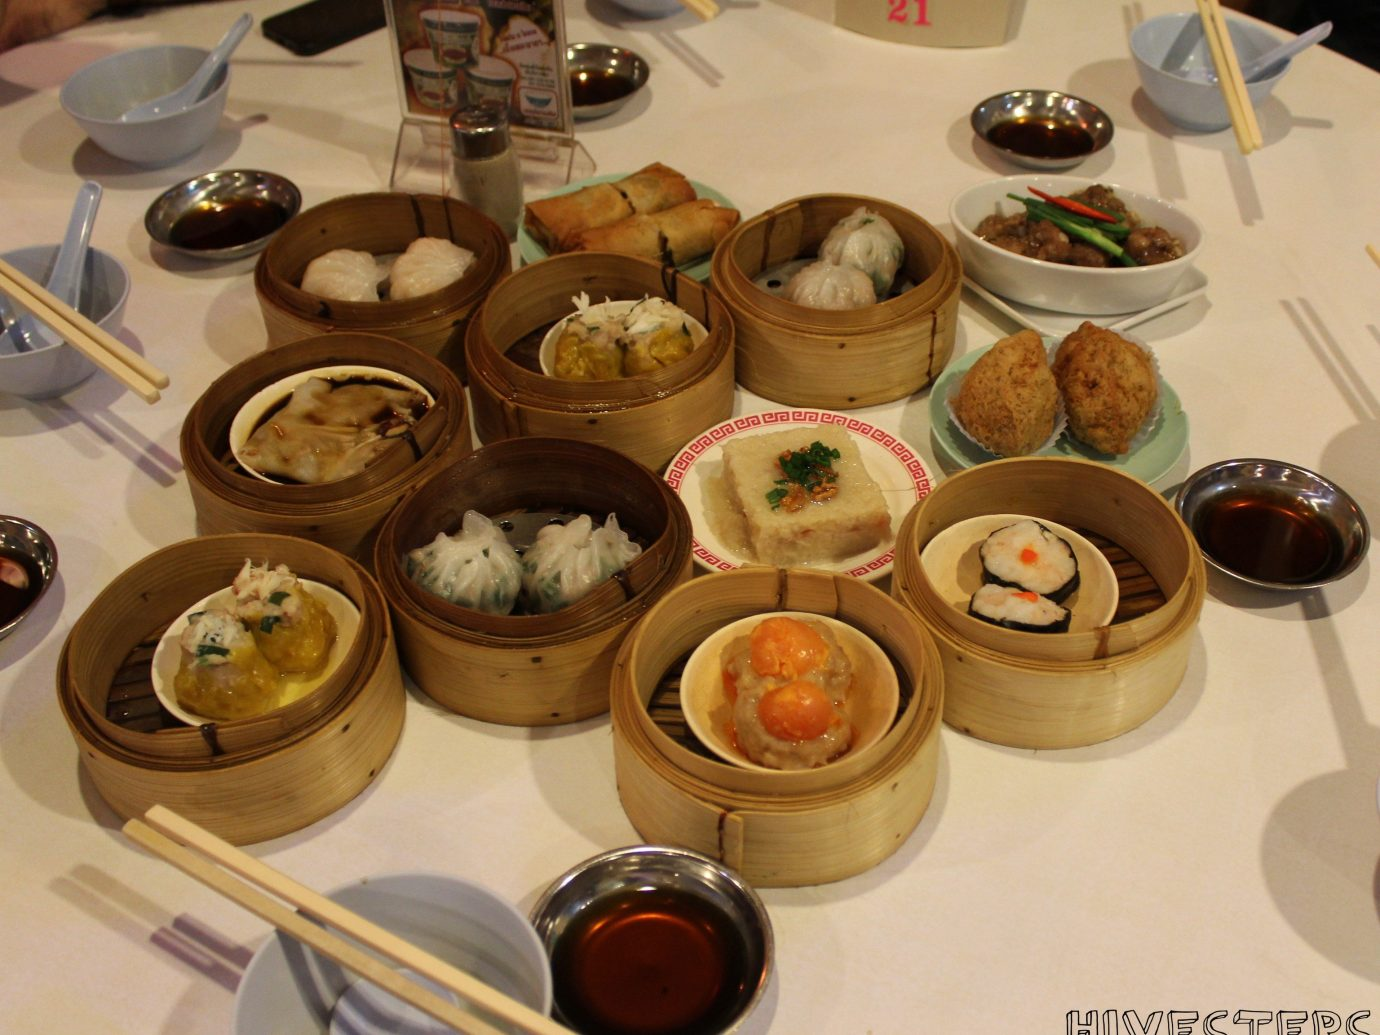 Jetsetter Guides table indoor plate food meal dessert chinese food lots cuisine dim sum asian food breakfast brunch different various baking buffet full set several variety